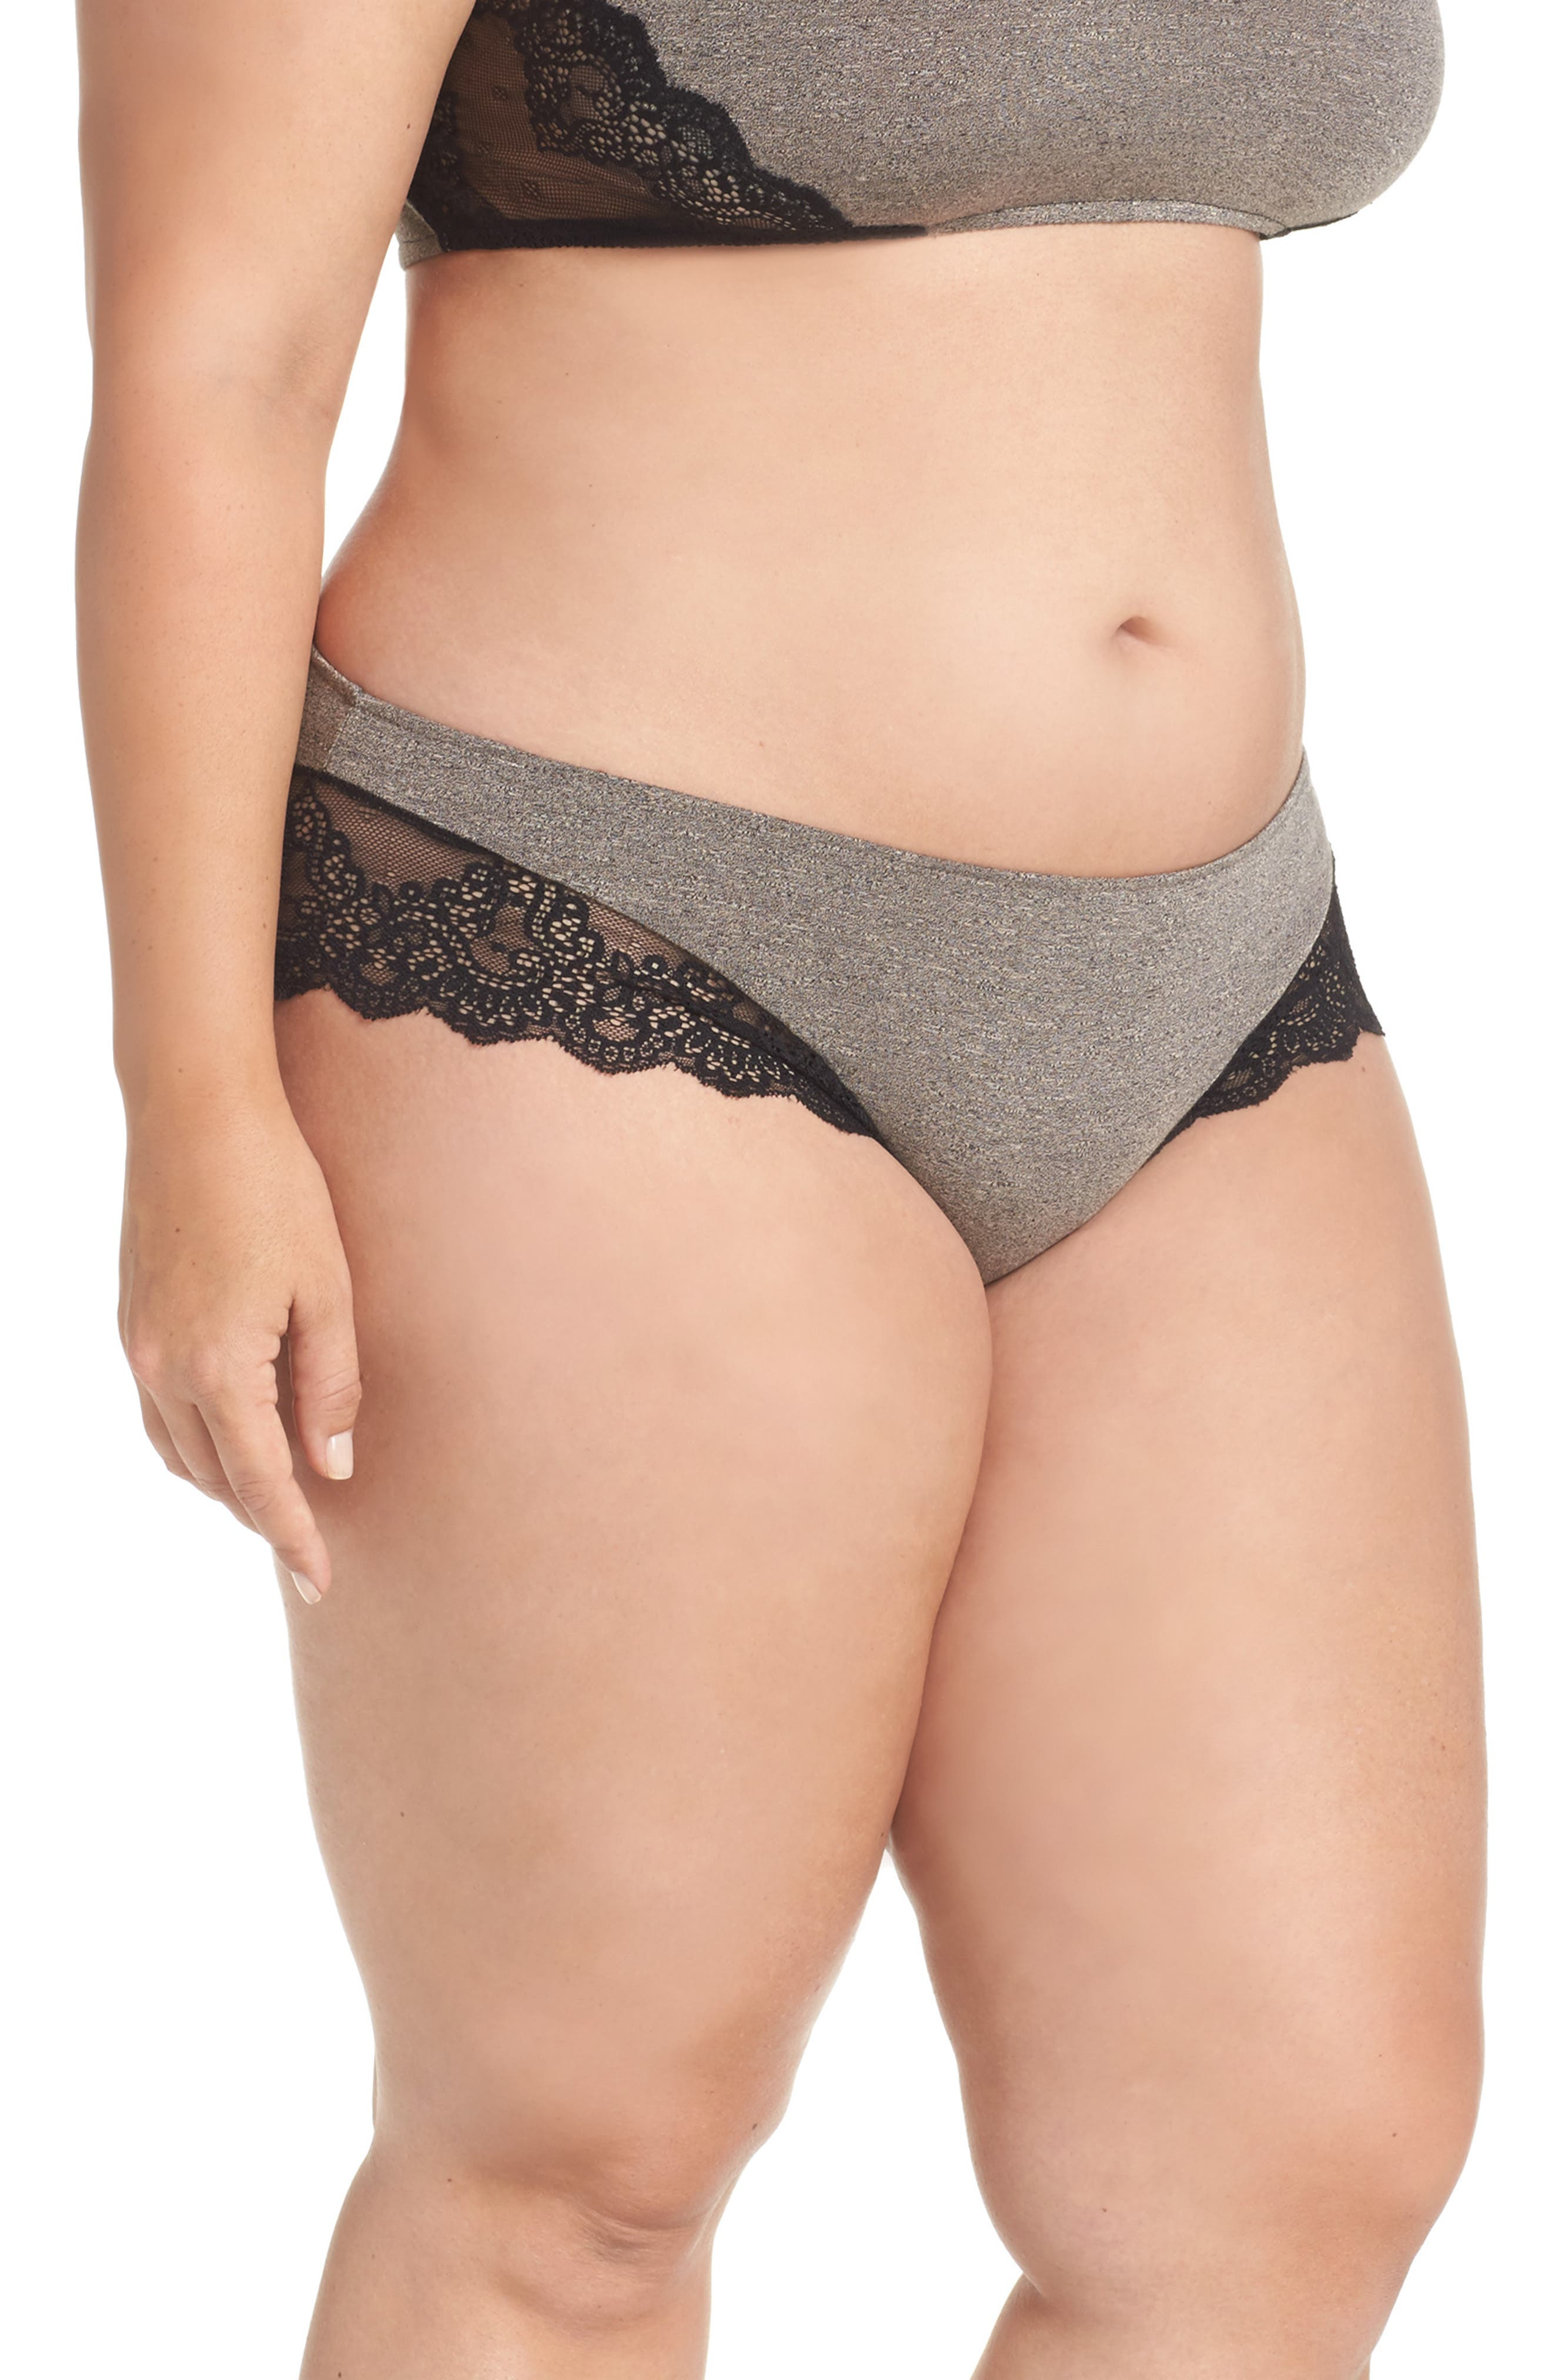 Alternate Image 3  - Only Hearts So Fine Hipster Panties (Plus Size)